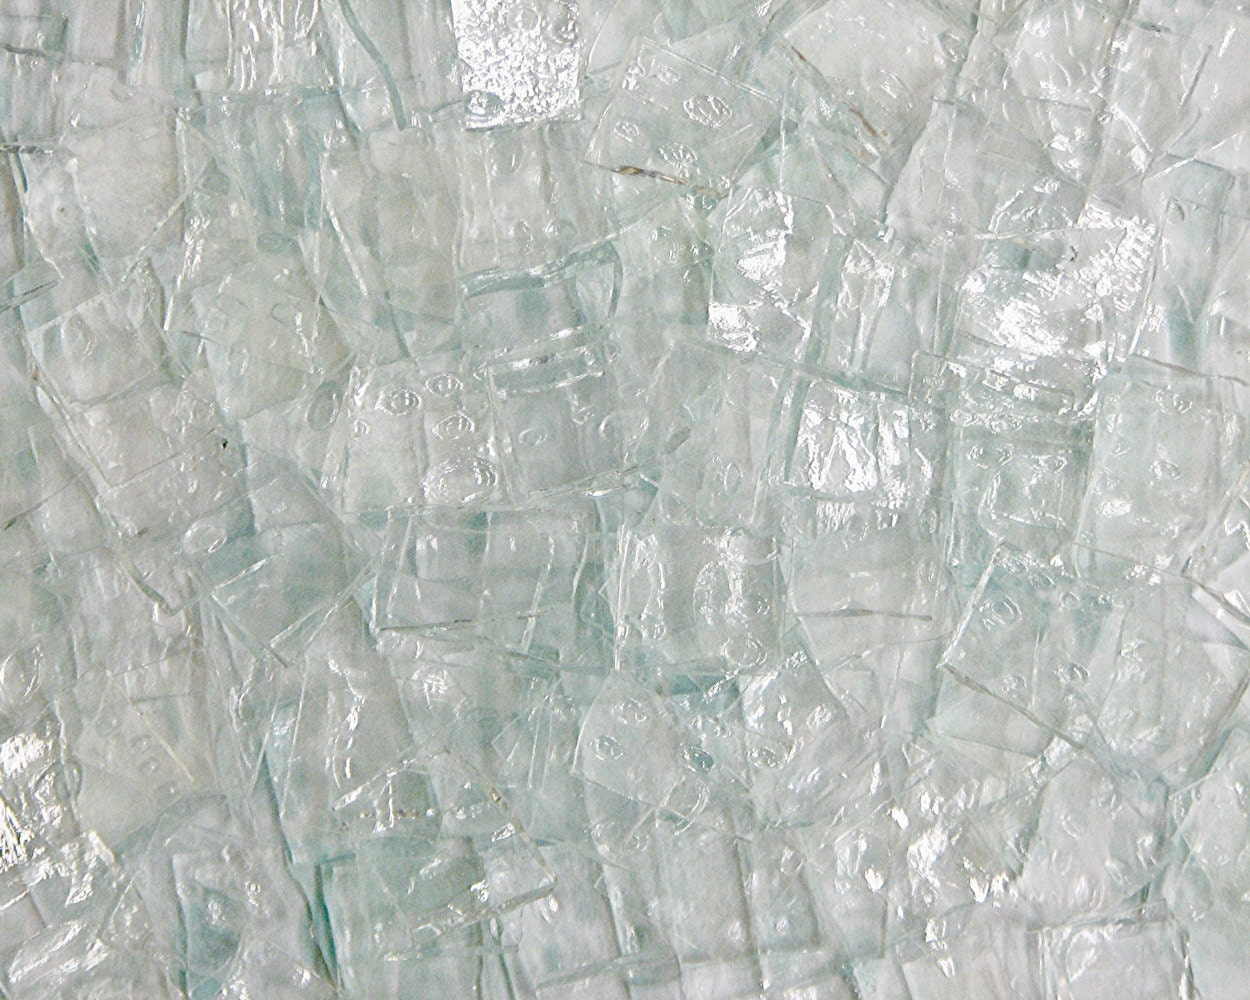 Crystal Clear Glass Tile 200 Handcut By CalicoSkiesMosaics On Etsy